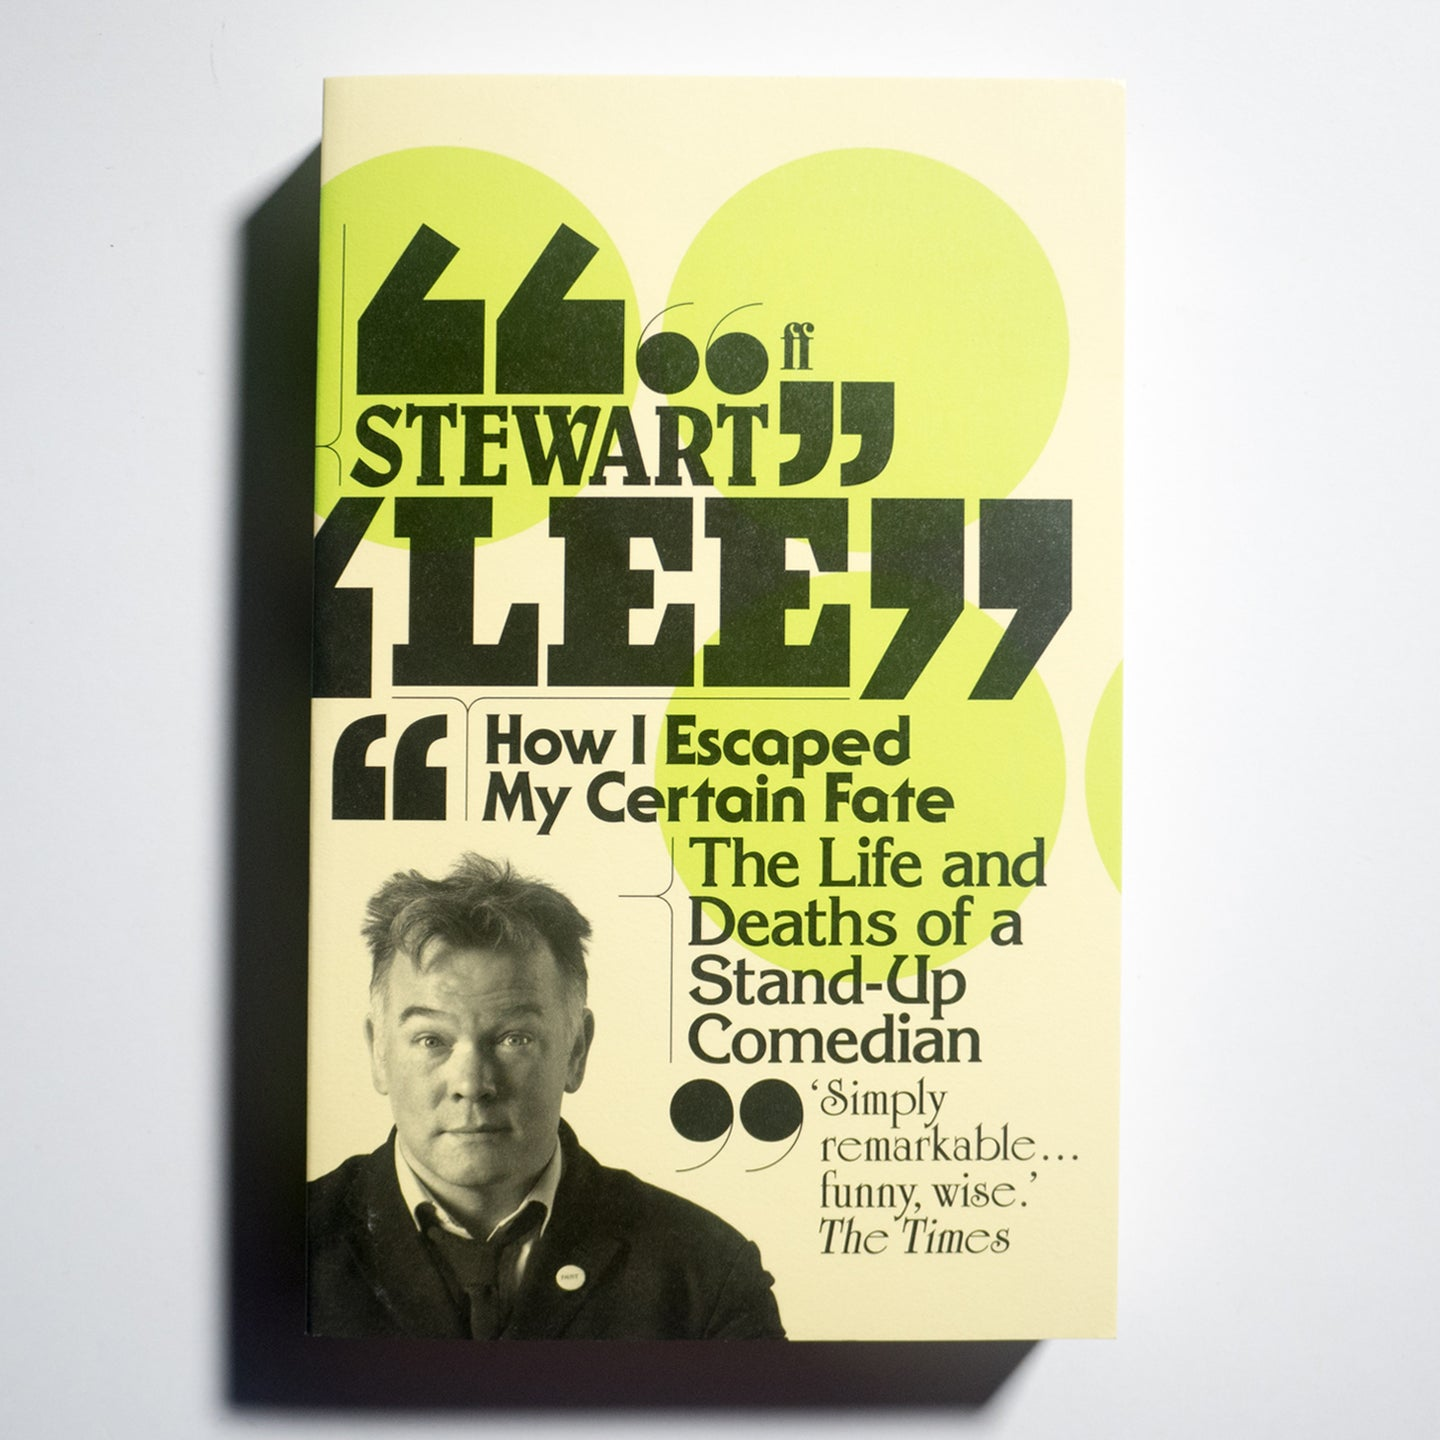 STEWART LEE | How I Escaped My Certain fate. The Life and Deaths of a Stand-up Comedian